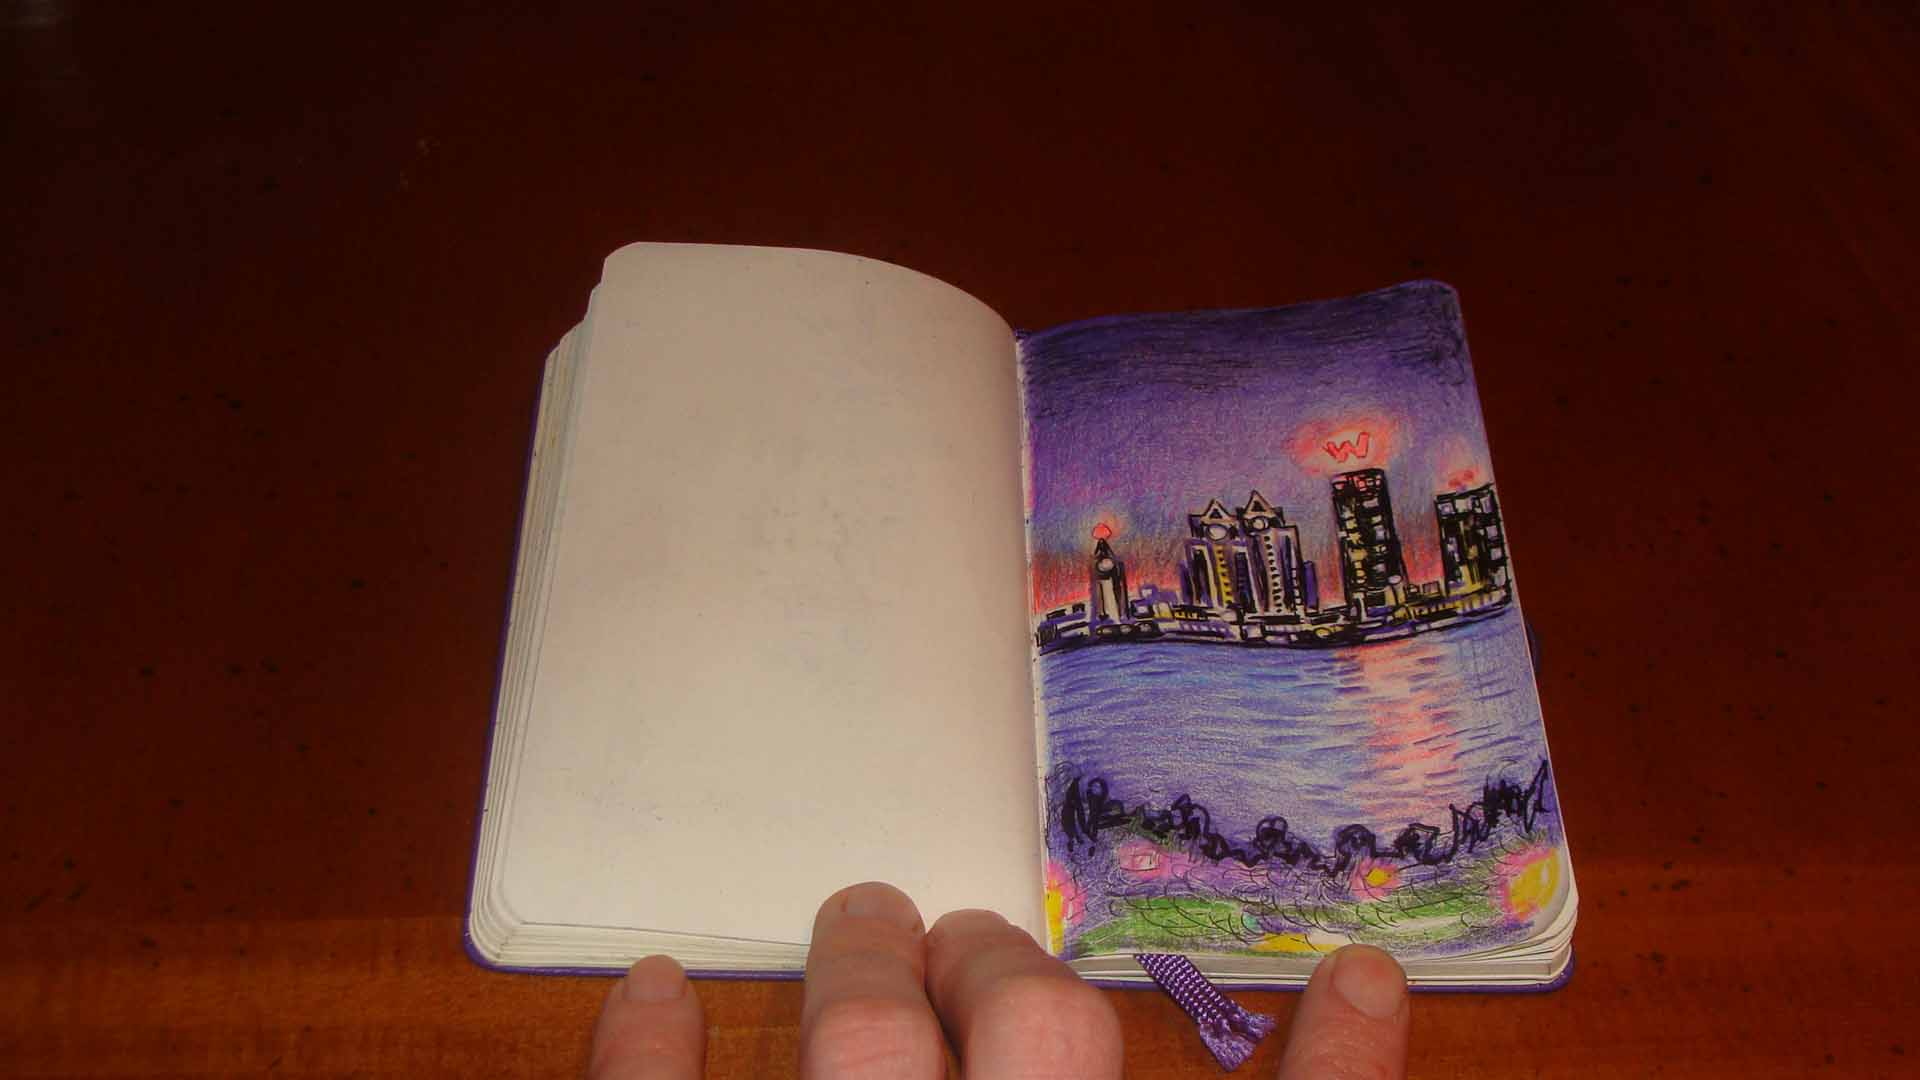 W Hotel across the Hudson (Wayne Ferrebee, 2015, color pencil sketch)